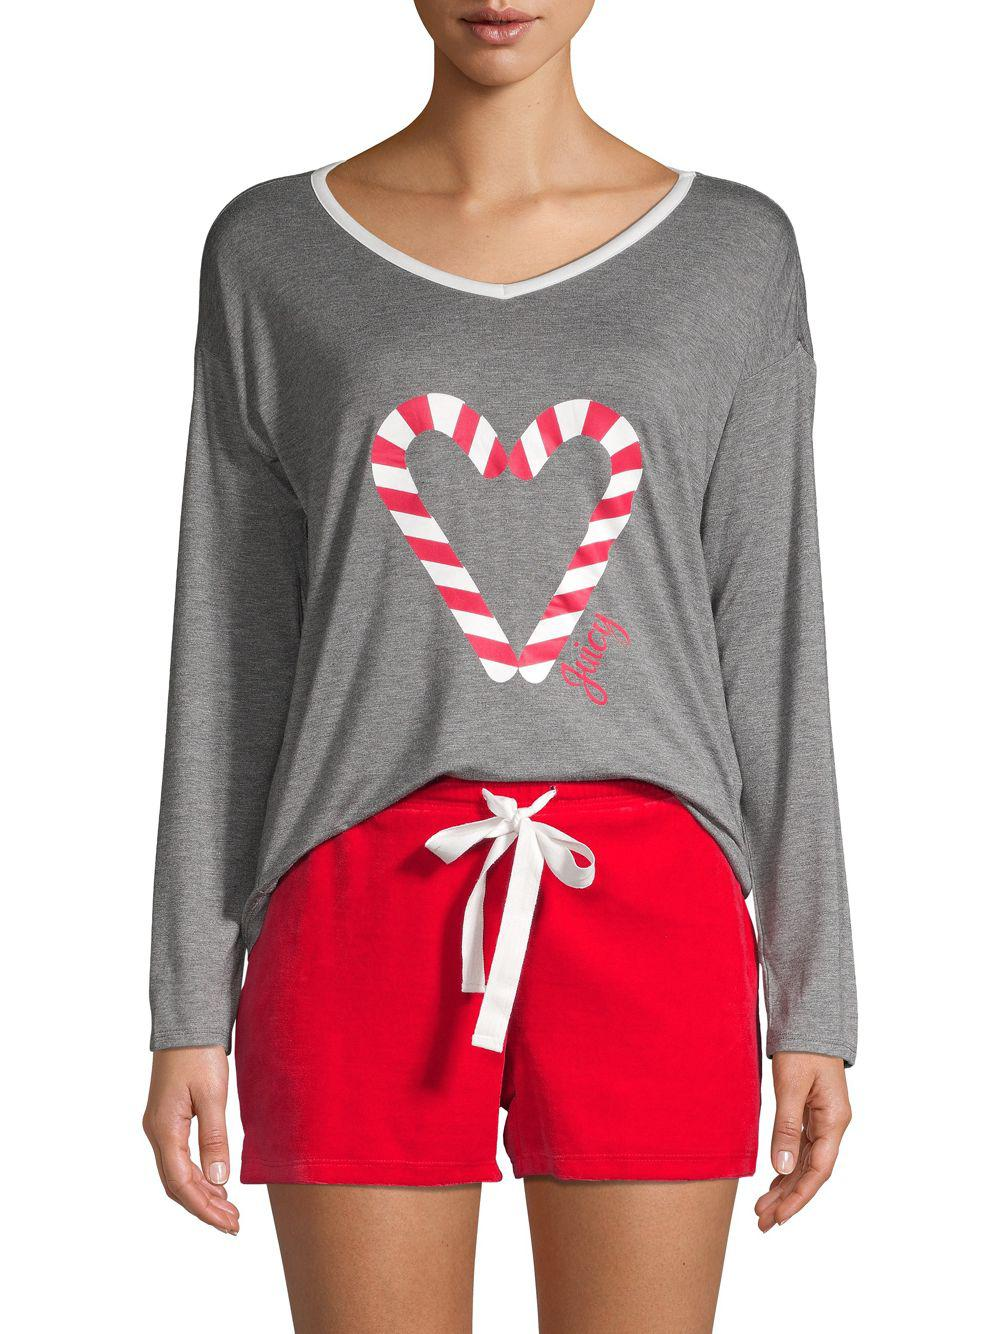 Juicy Couture Two-piece Graphic Pajama Set in Gray - Lyst c0b084705